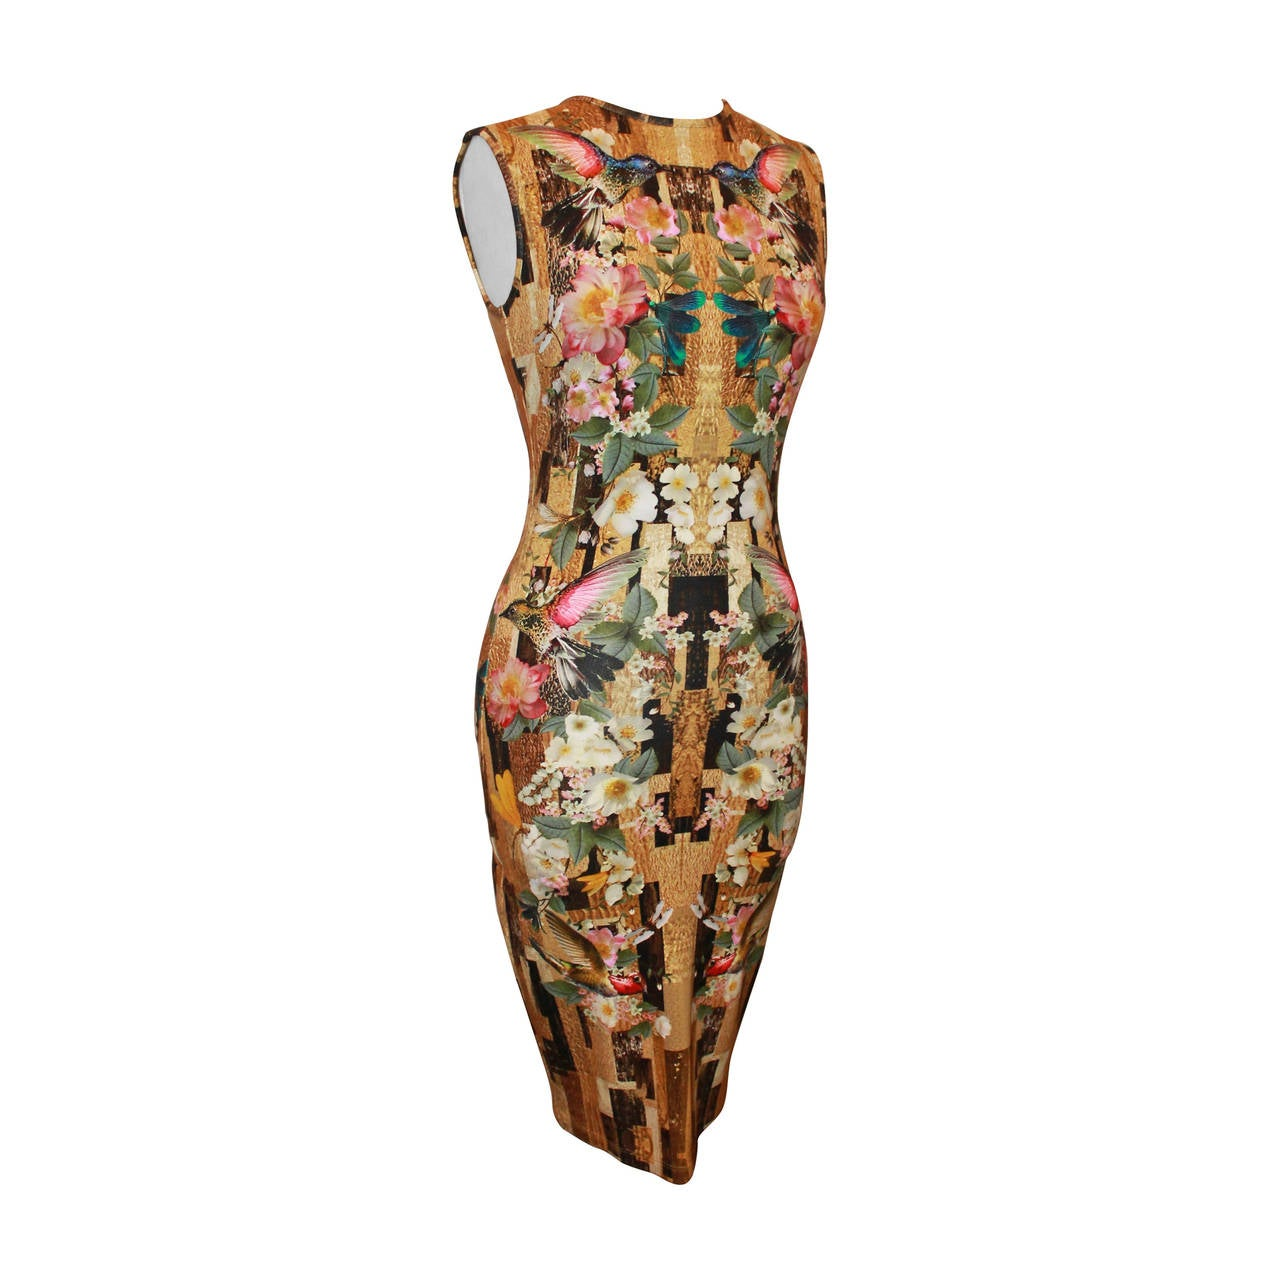 Alexander McQueen 2013 Resort Hummingbird & Floral Print Fitted Dress - M For Sale